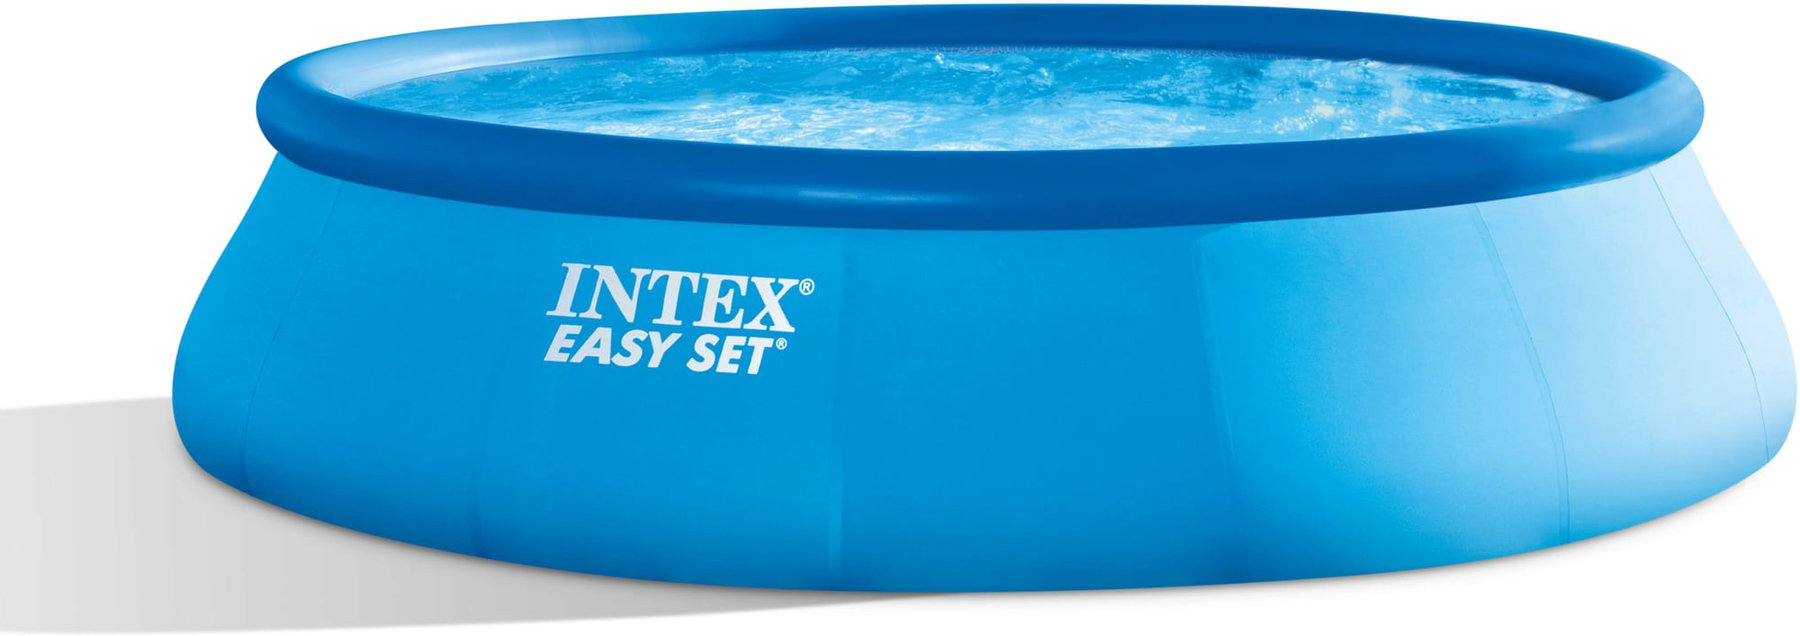 Lidl Pool Pflege Intex Pool Store Gutschein Amazing Large Plastic Pools For Sale